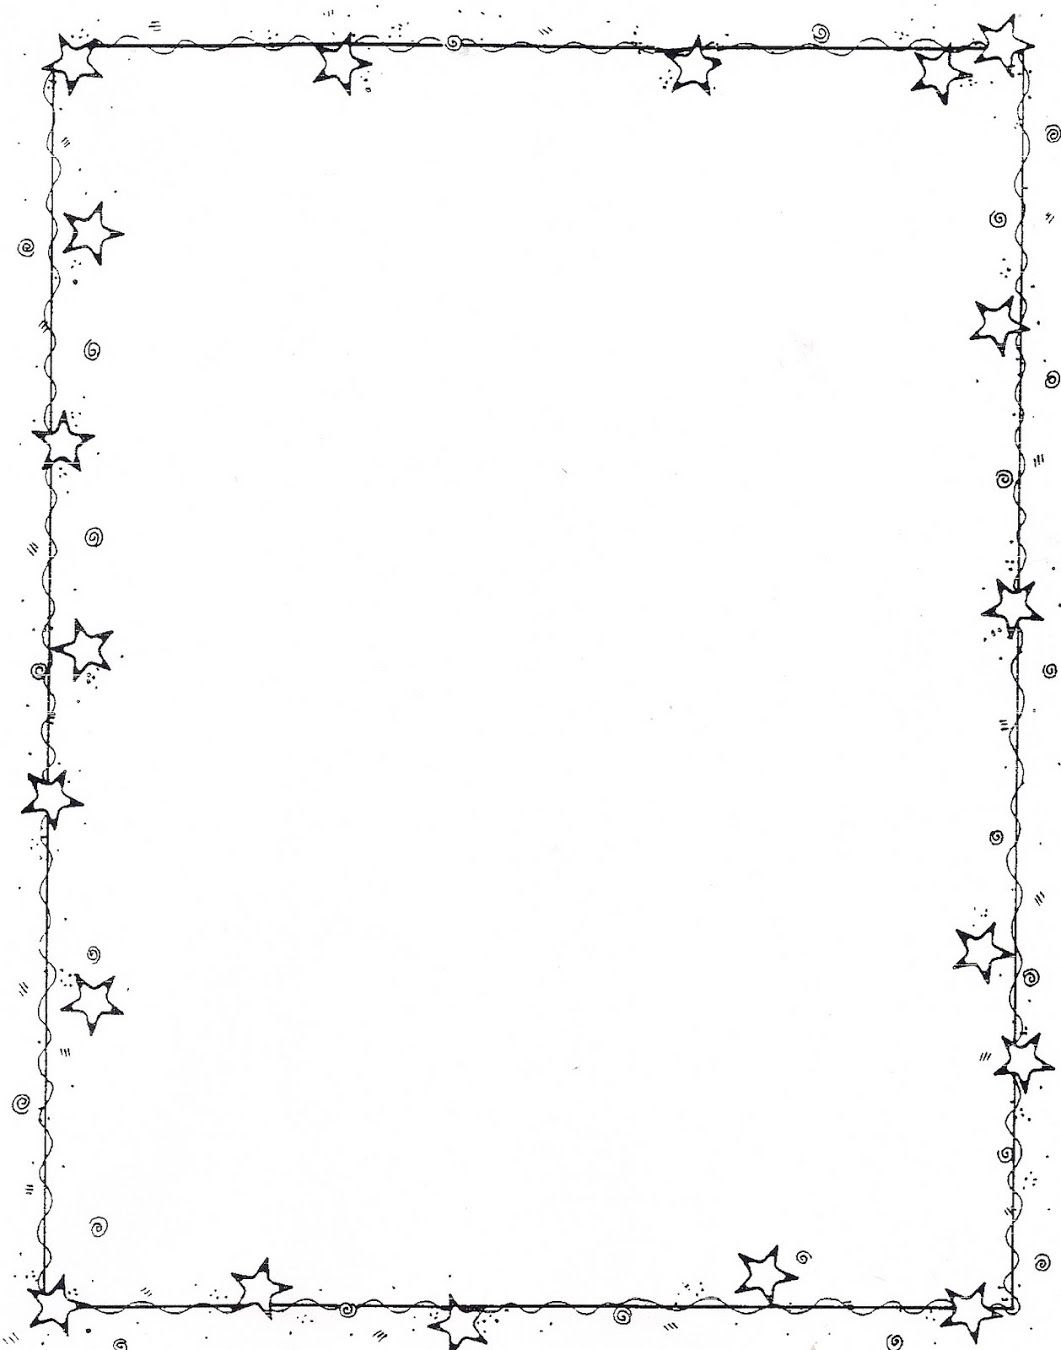 worksheet Carson-dellosa Worksheets star border clipart abs for worksheets pinterest bbg om